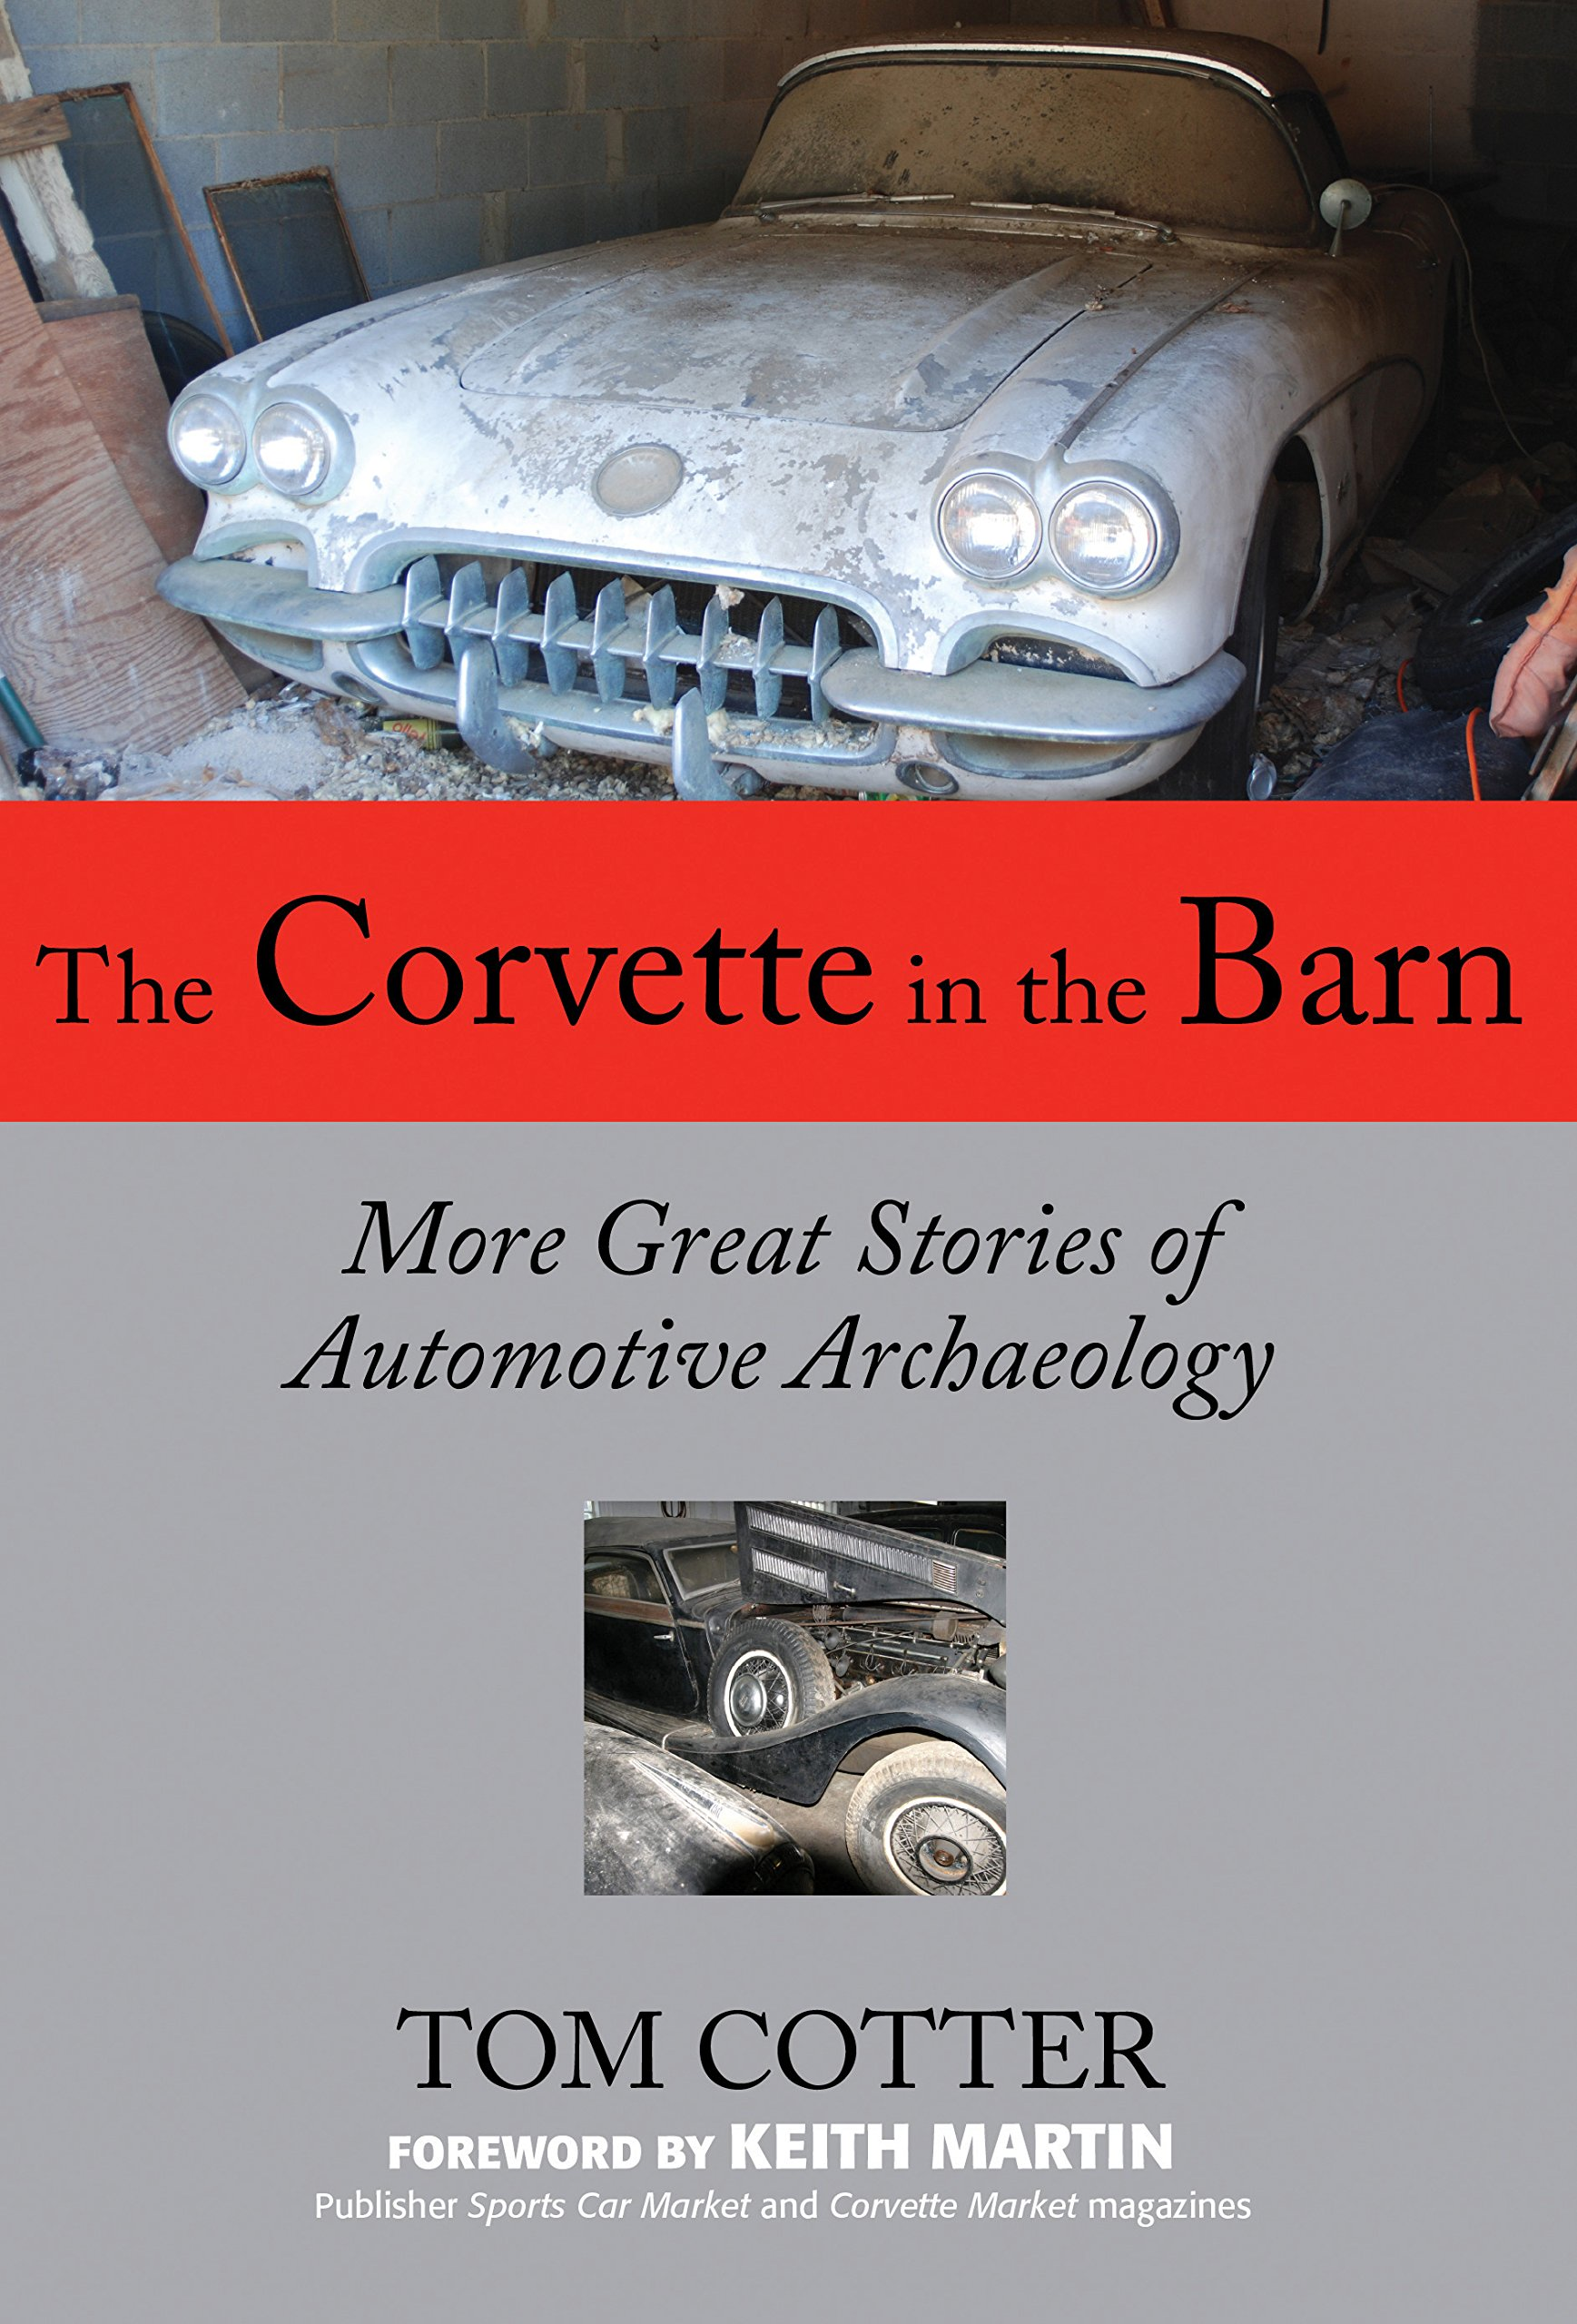 The Corvette In Barn More Great Stories Of Automotive Archaeology Tom Cotter Keith Martin 9780760337974 Amazon Books